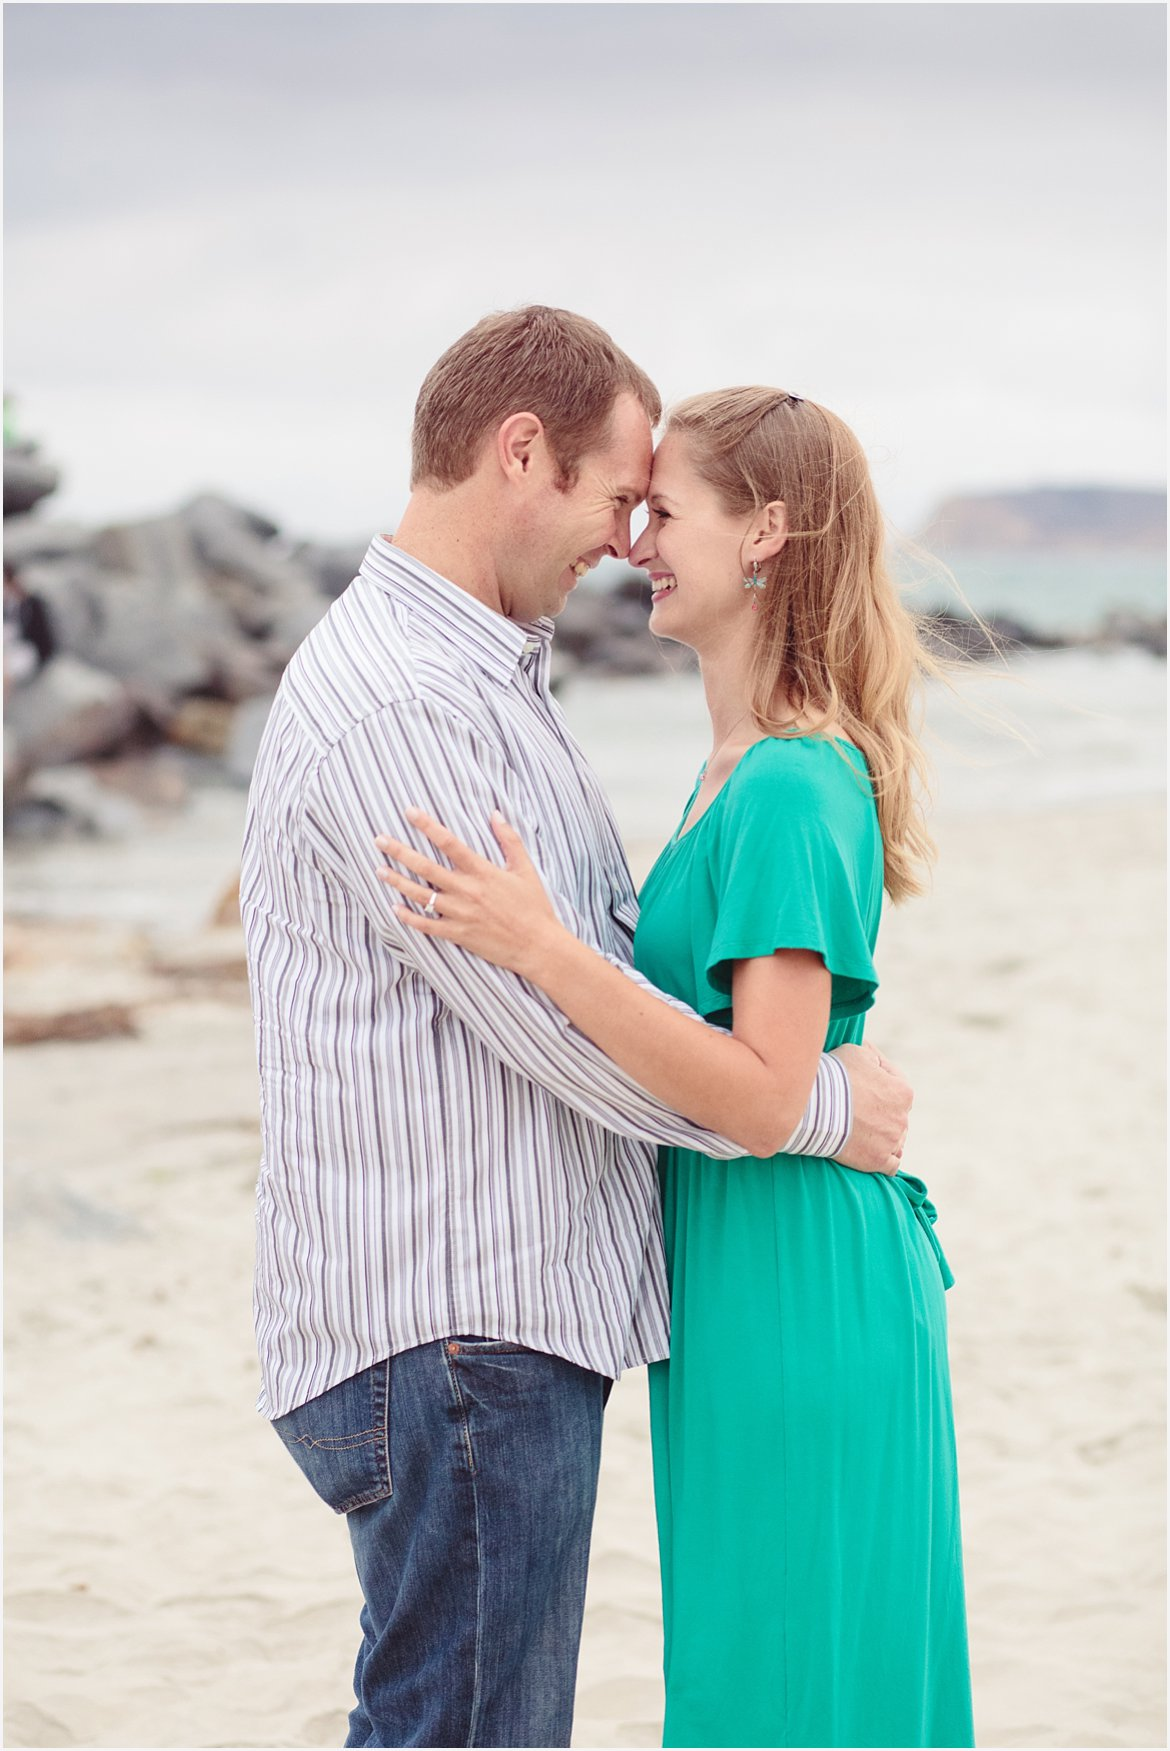 Coronado Photographer | San Diego Beach Photography